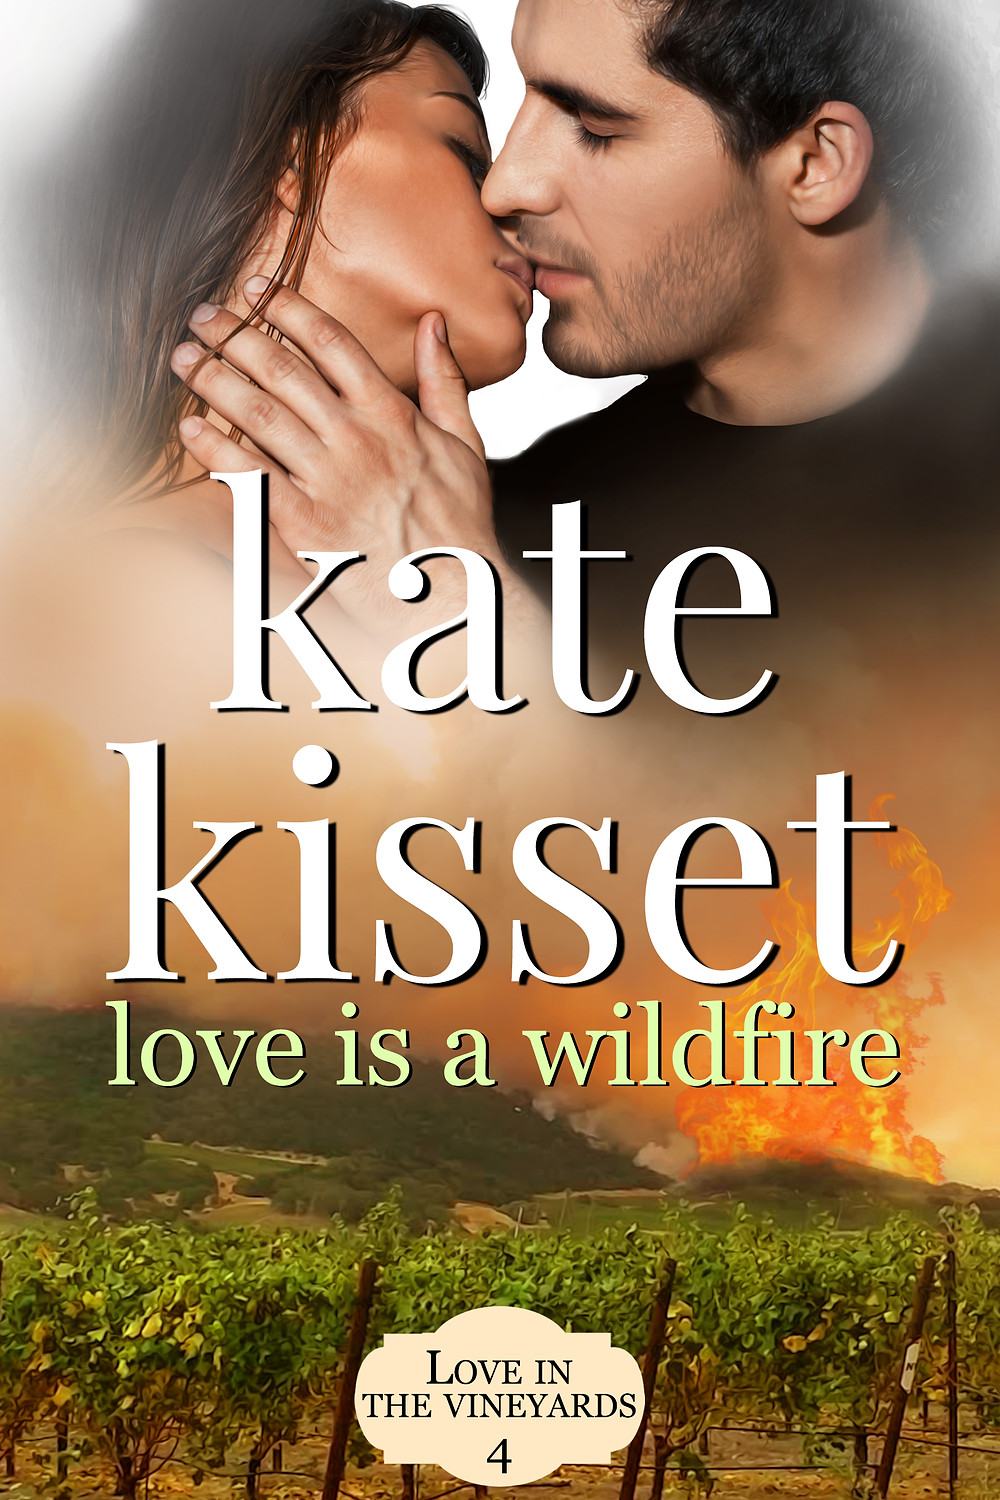 Love is a Wildfire hits Amazon July 27th!